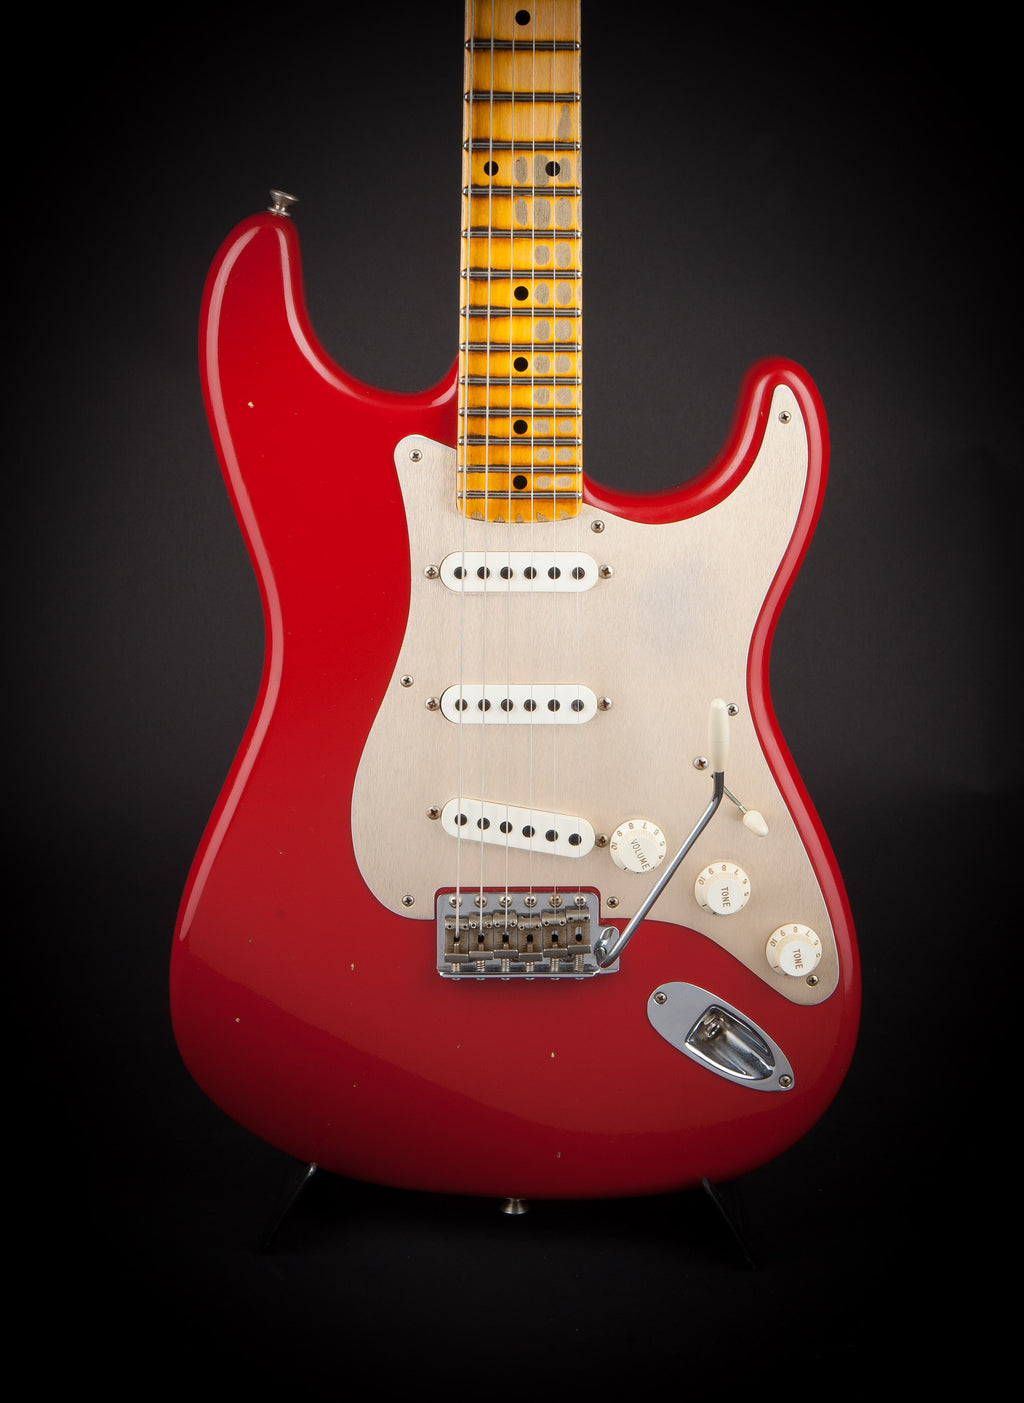 Fender Custom Shop: 57 Stratocaster Seminol Red Journeyman Relic #R91935